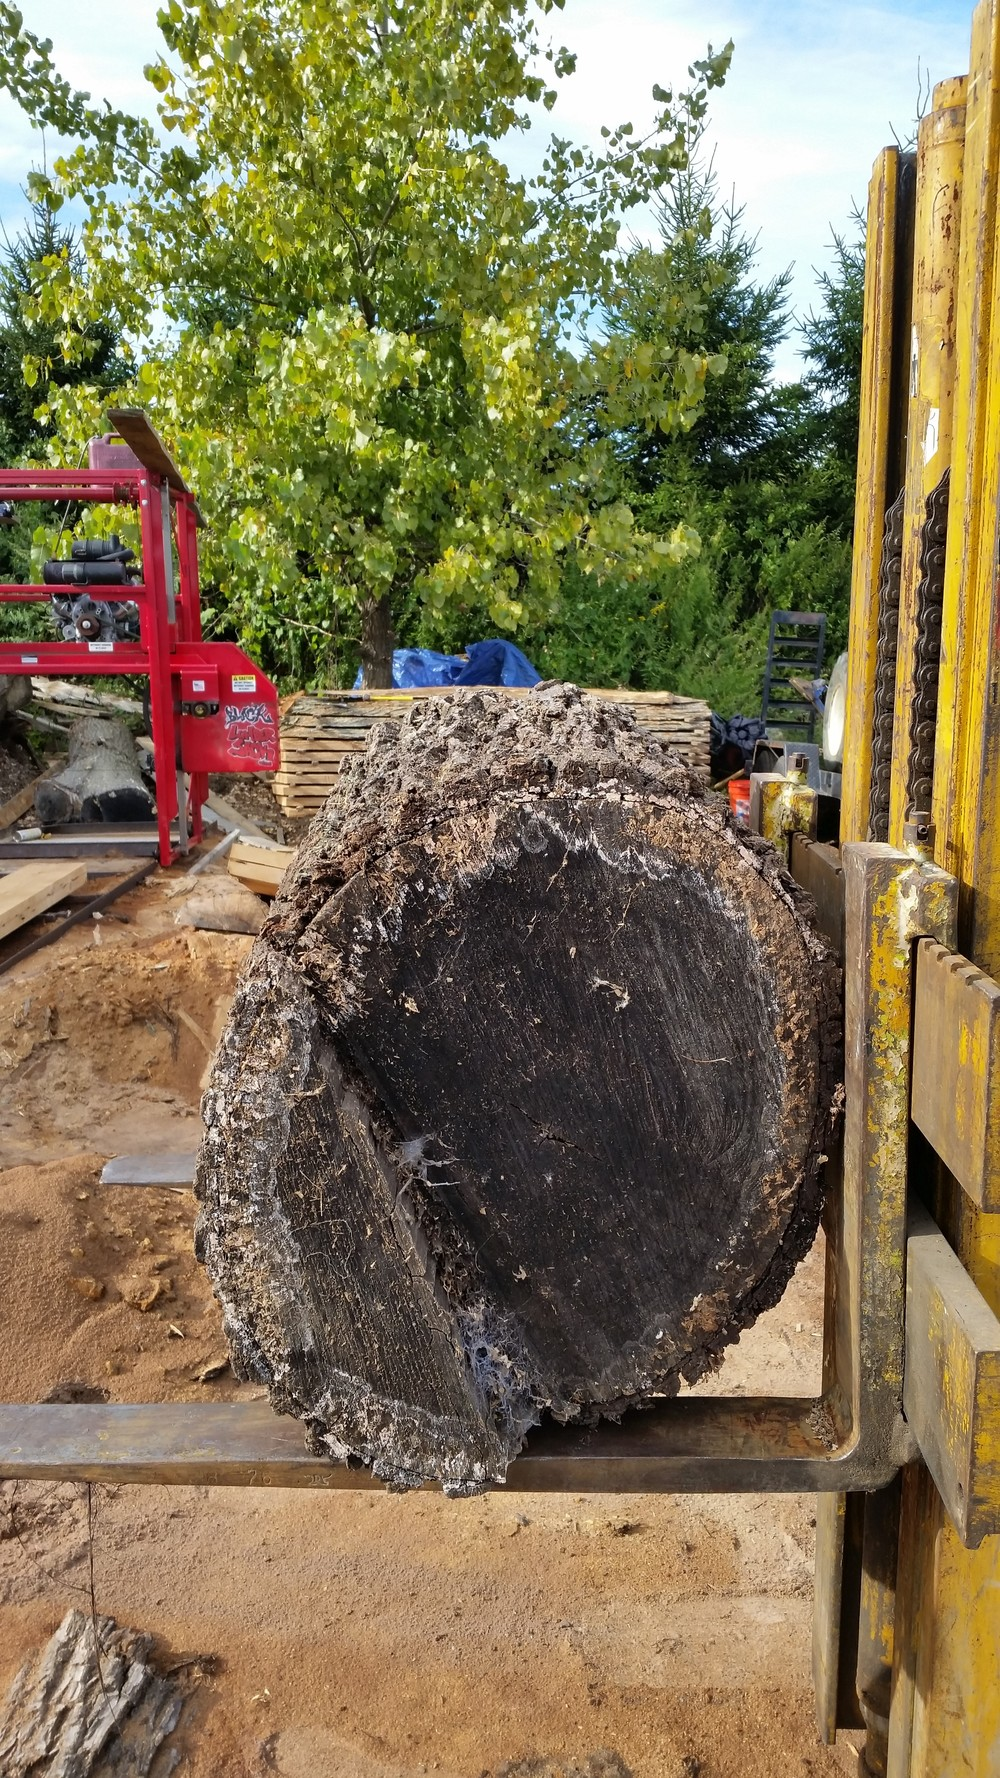 A view of the log from its other side.  Must say the little forklift is quite a work horse!